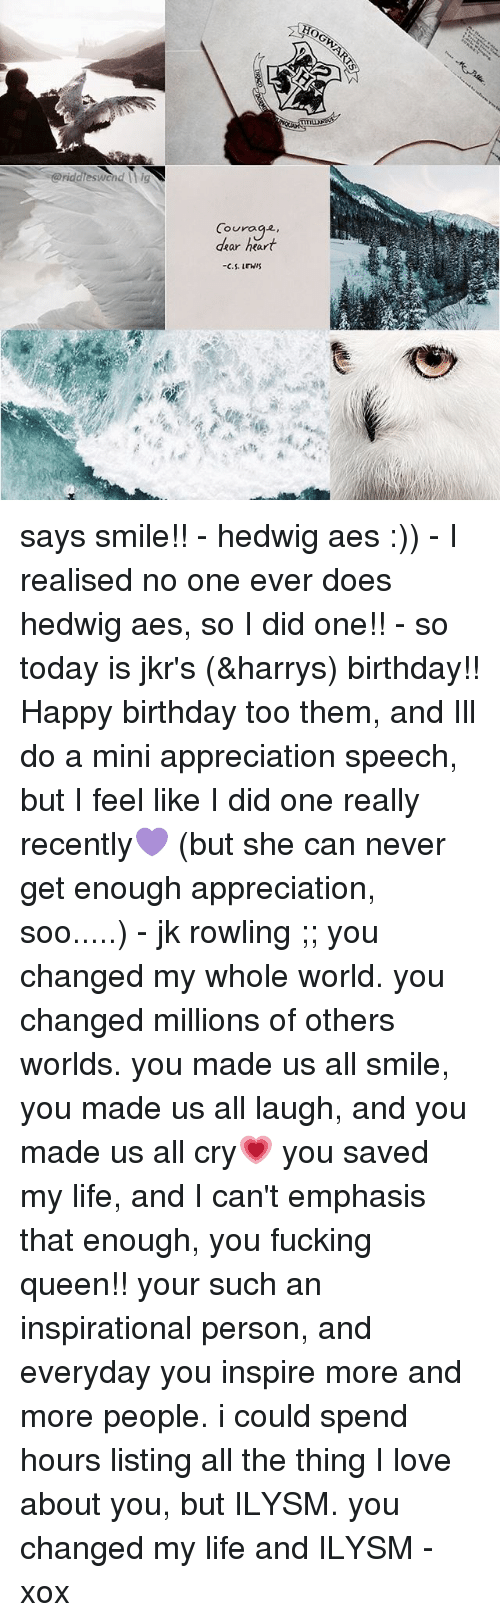 Lewy: @riddieswcnd hig  Courage,  dear heart  -C.S.LEWI says smile!! - hedwig aes :)) - I realised no one ever does hedwig aes, so I did one!! - so today is jkr's (&harrys) birthday!! Happy birthday too them, and Ill do a mini appreciation speech, but I feel like I did one really recently💜 (but she can never get enough appreciation, soo.....) - jk rowling ;; you changed my whole world. you changed millions of others worlds. you made us all smile, you made us all laugh, and you made us all cry💗 you saved my life, and I can't emphasis that enough, you fucking queen!! your such an inspirational person, and everyday you inspire more and more people. i could spend hours listing all the thing I love about you, but ILYSM. you changed my life and ILYSM - xox